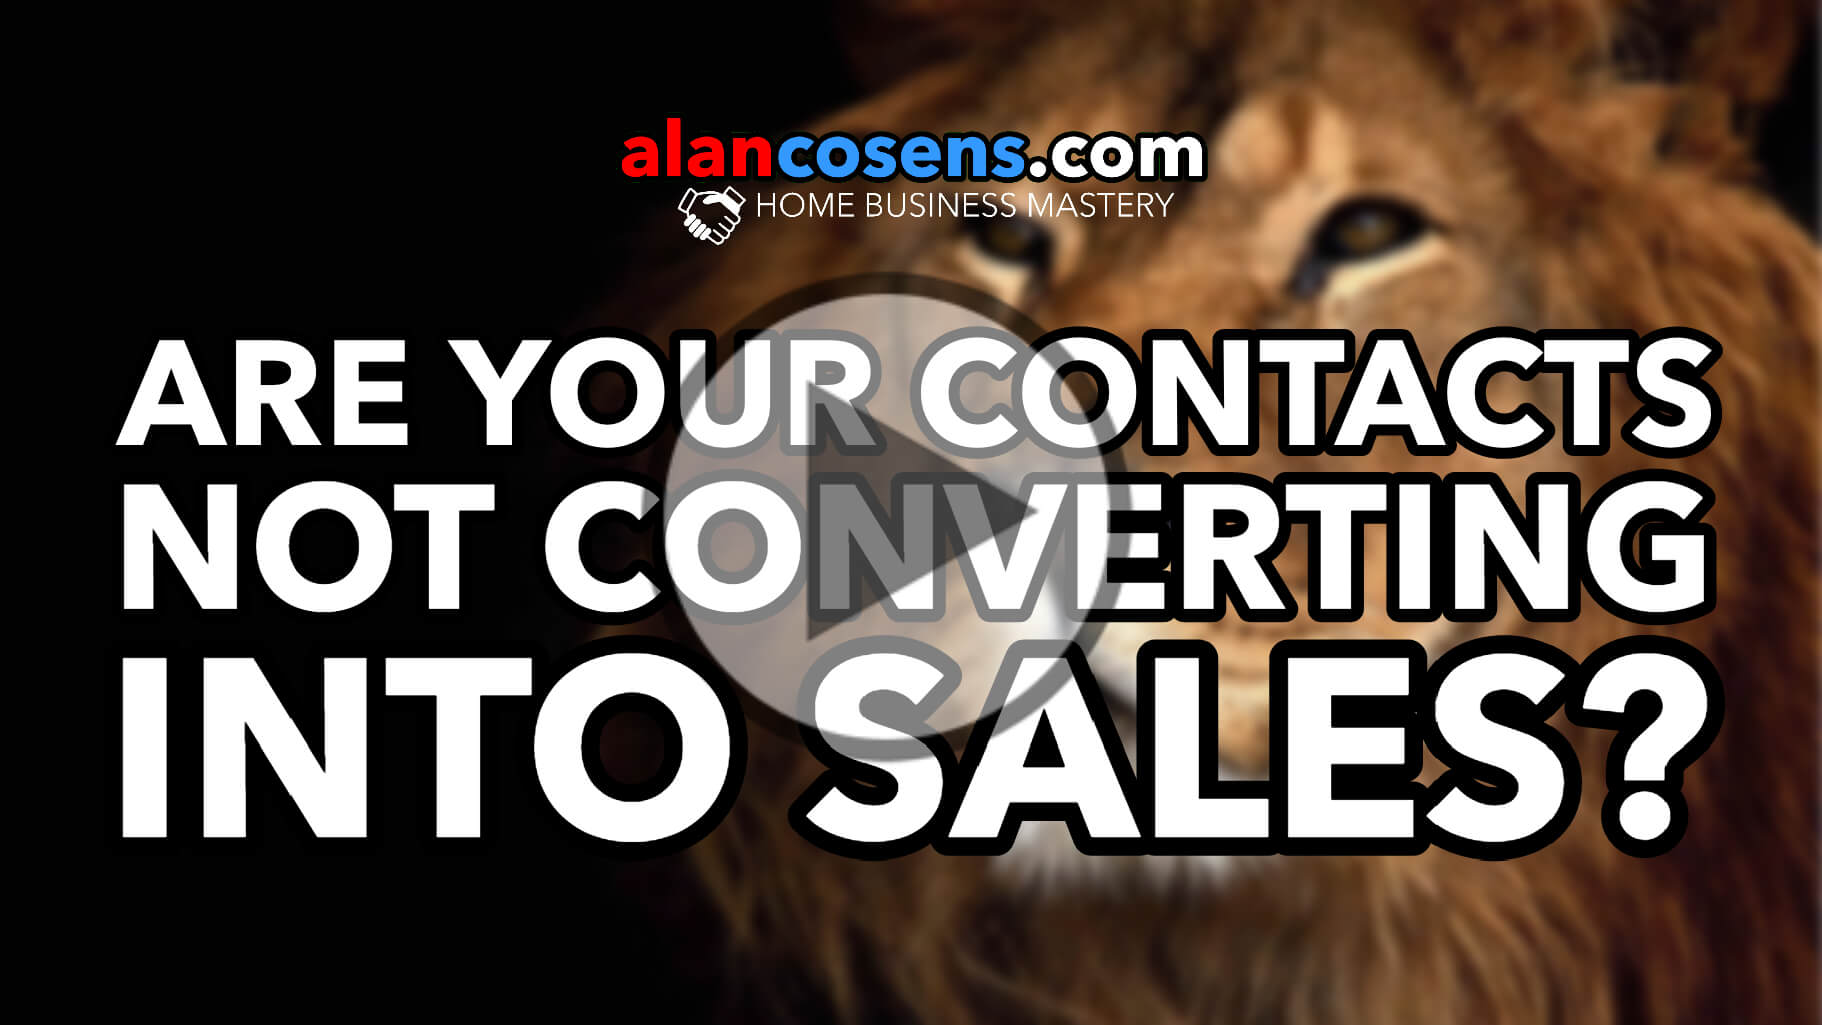 Are Your Contacts Not Converting Into Sales?